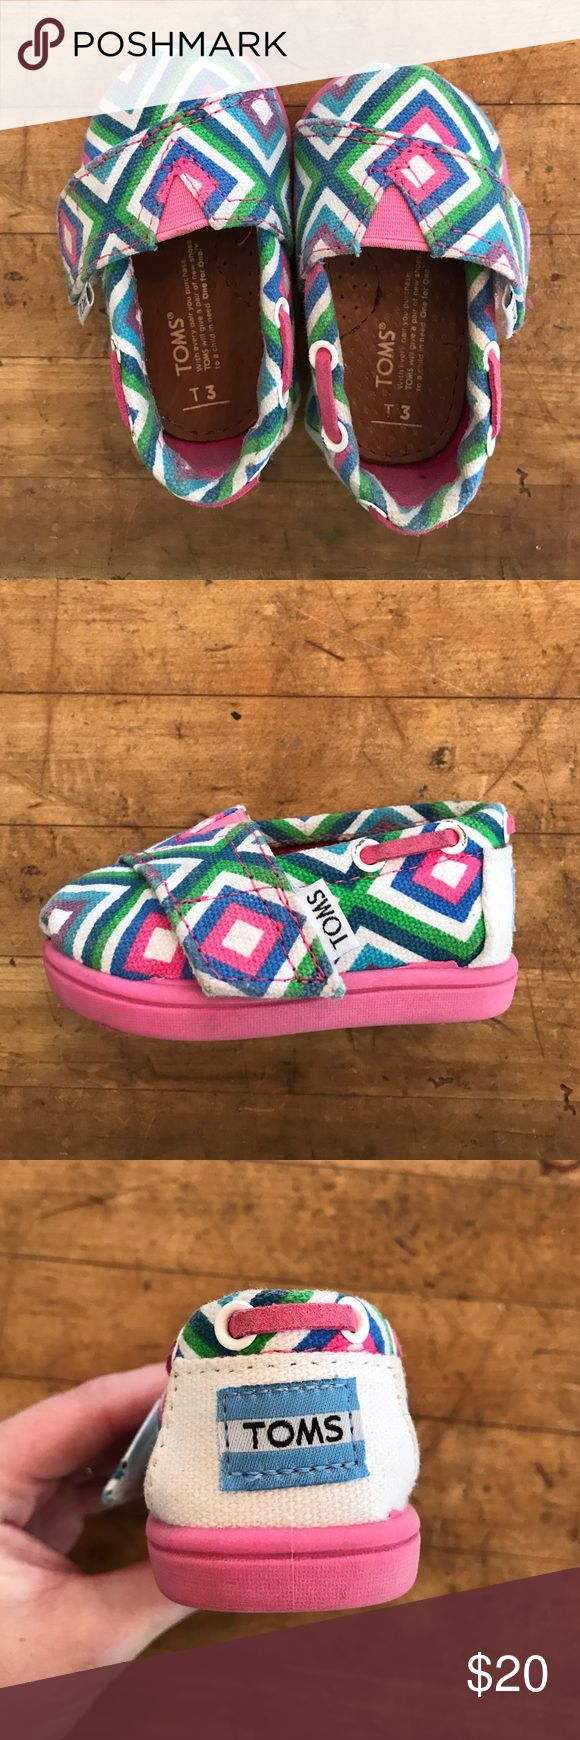 TOMS Velcro sneakers TOMS Velcro side slip on sneakers for girls TOMS Shoes Sneakers